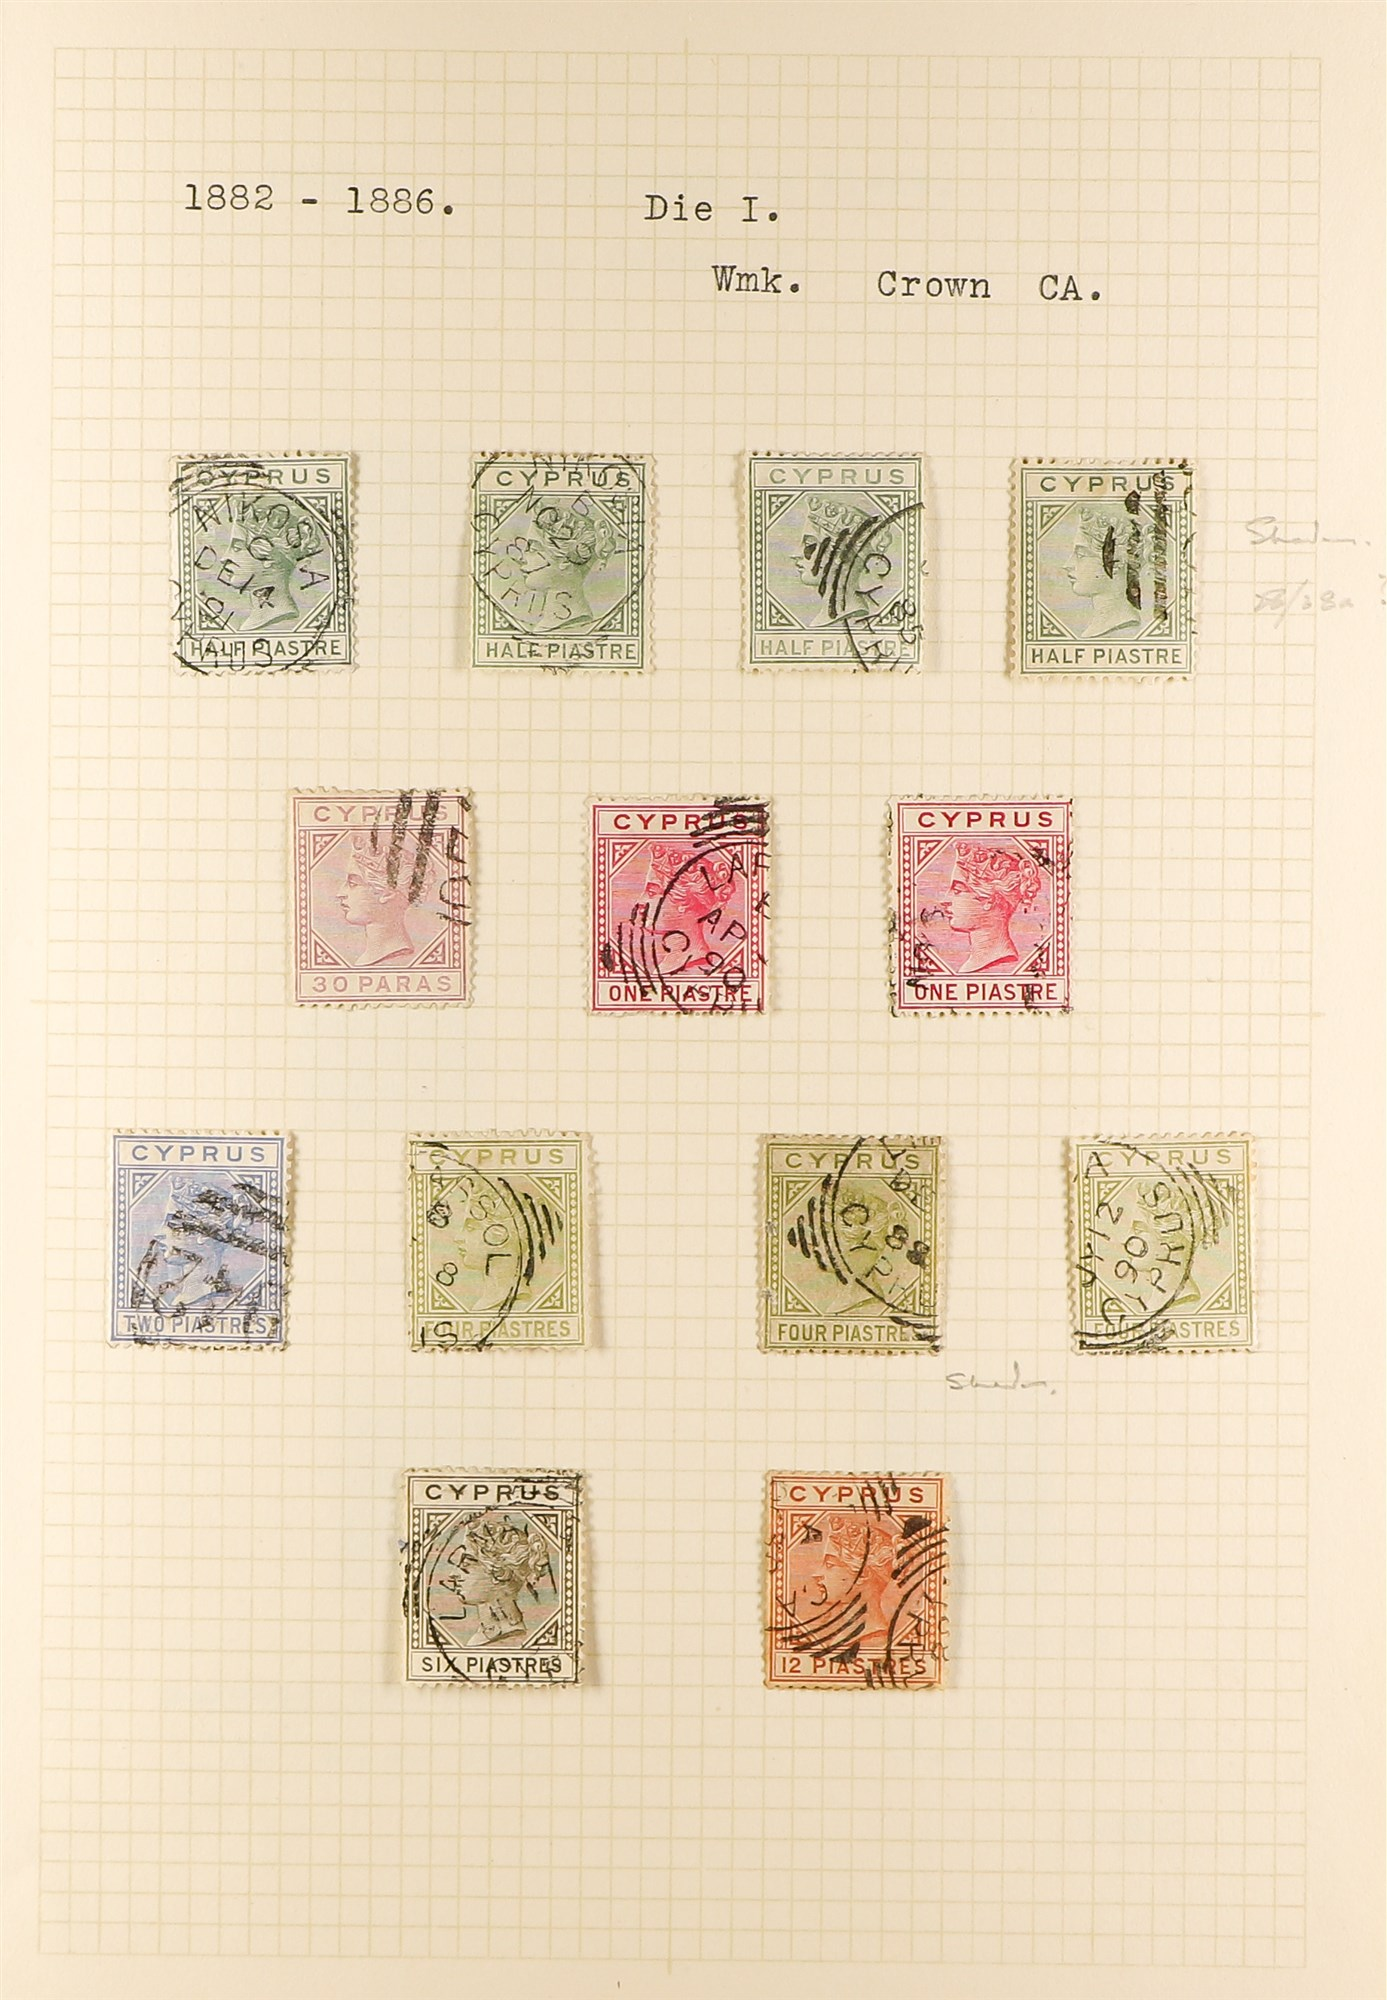 CYPRUS 1880-1935 old used collection incl. 1880 GB overprints including 2½d & ½d plate 15 used, - Image 2 of 7